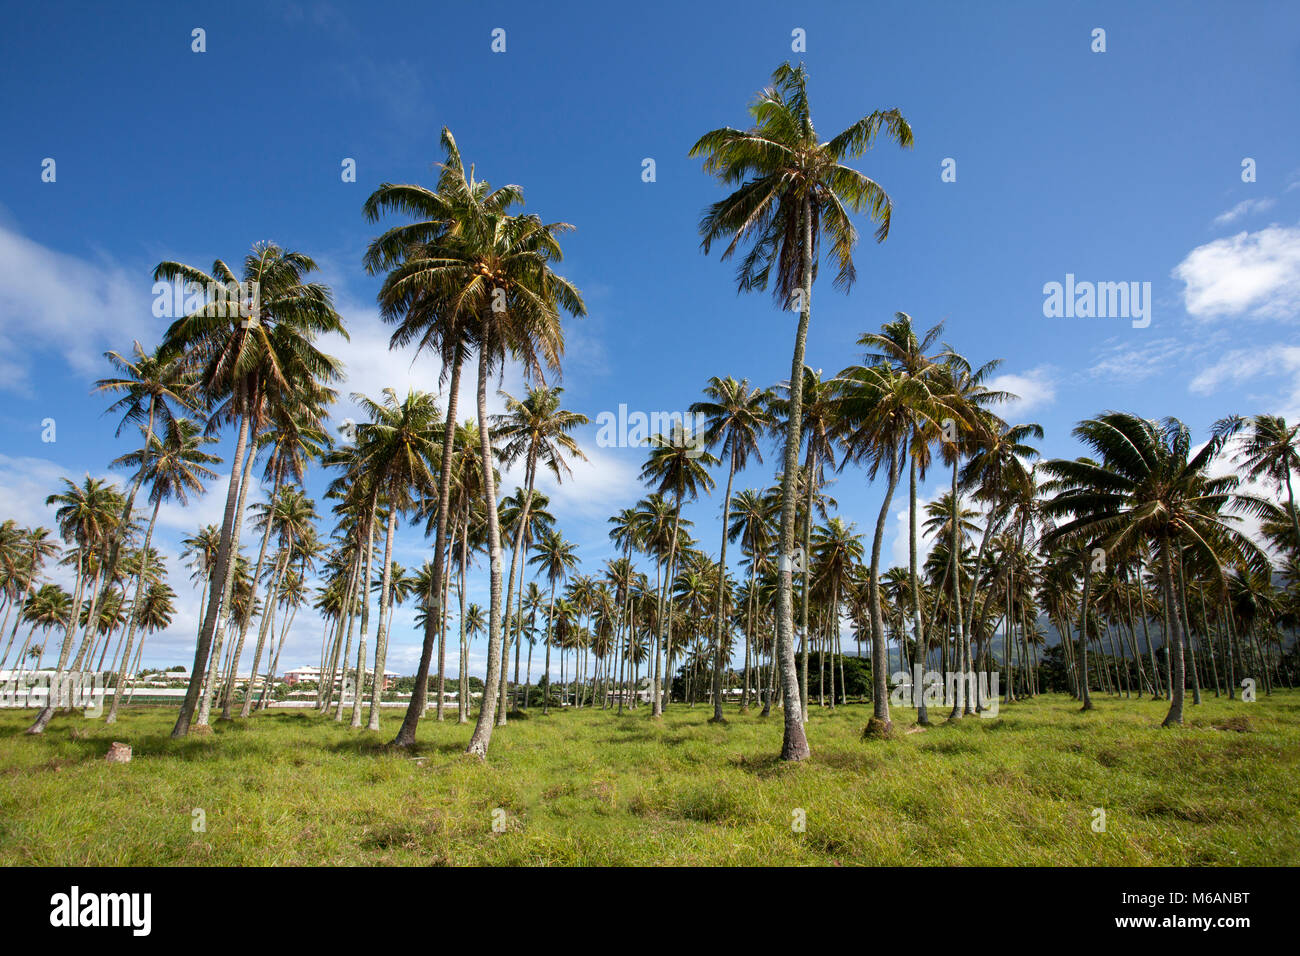 Plantation, coconut palm (Cocos nucifera), Tahiti, French Polynesia - Stock Image